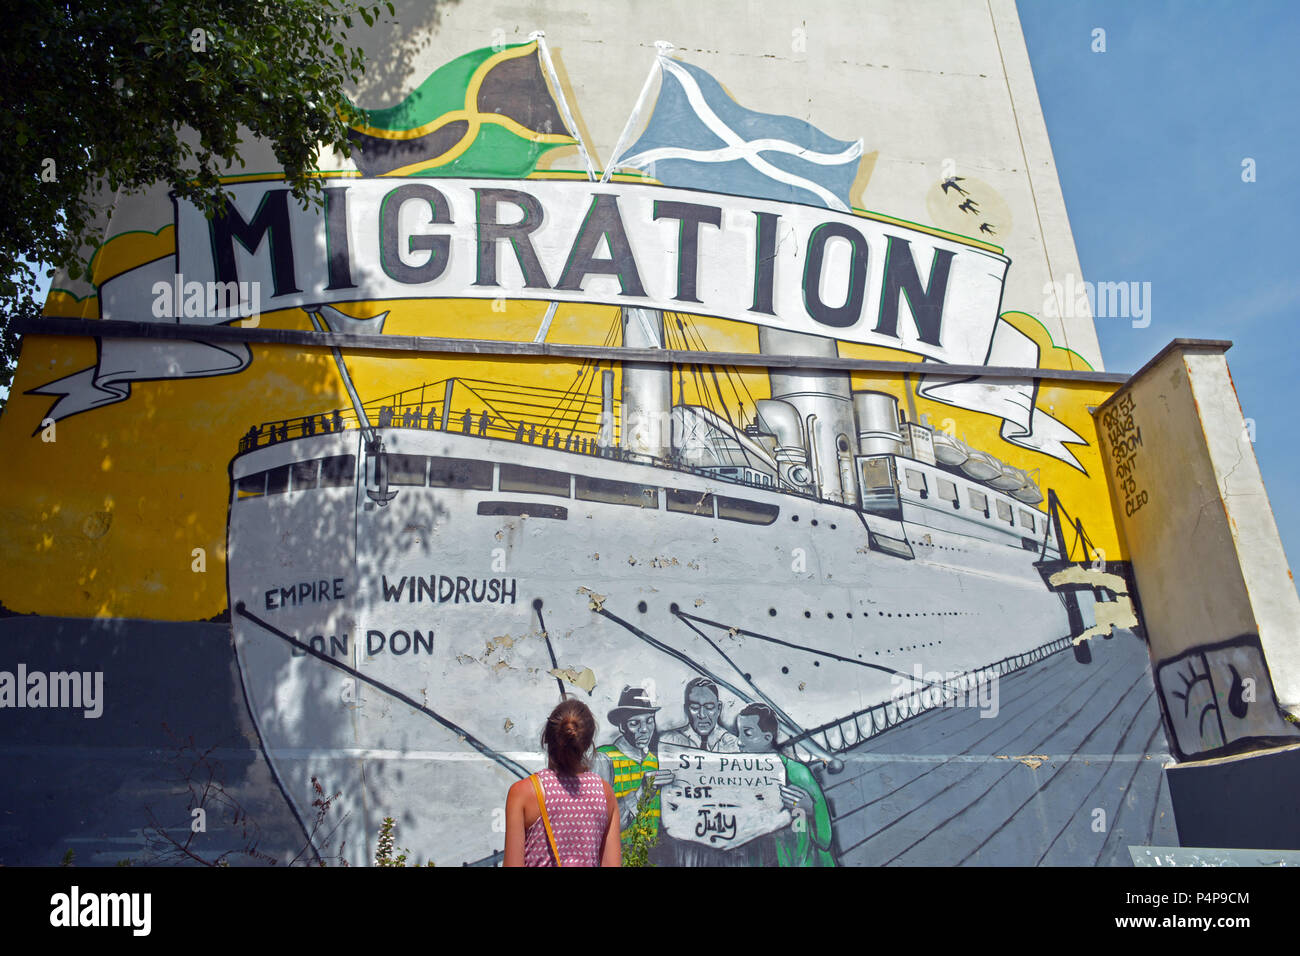 Bristol, UK. 23rd June 2018.  Empire Windrush Mural seen on the side of a Building Campbell Street, St Paul's. Its a space that celebrates the remarkable contribution of African and Caribbean men and women to this country. Robert Timoney/Alamy/Live/News - Stock Image